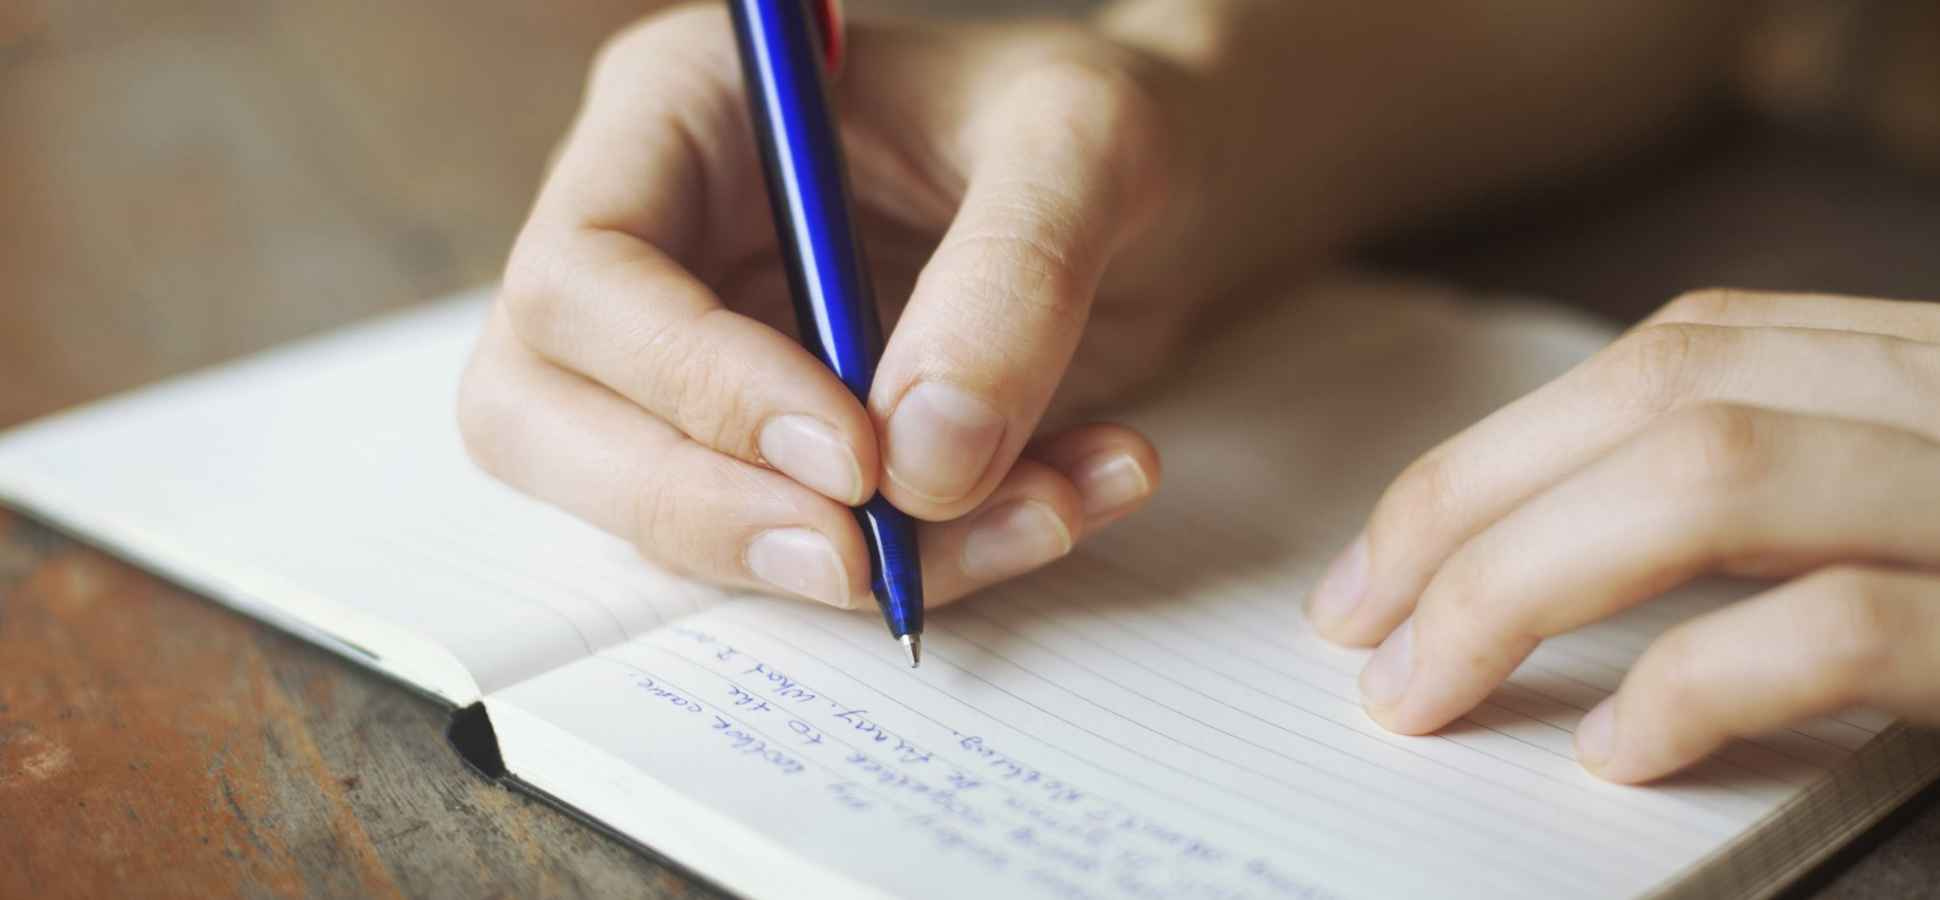 3 Reasons Entrepreneurs Should Write Every Single Day